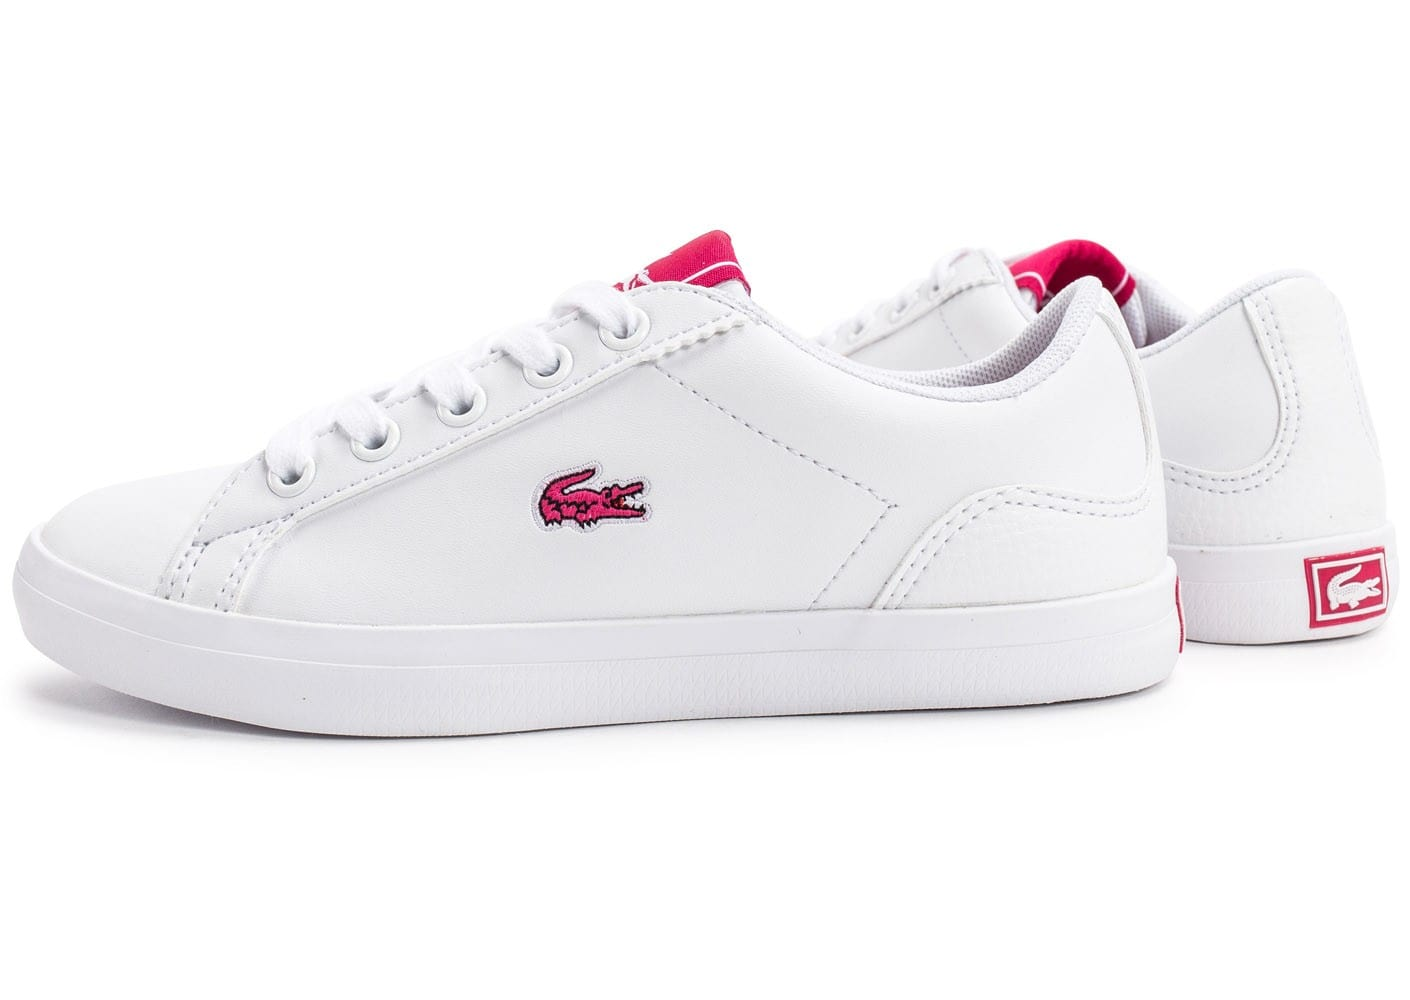 Lacoste Fille chaussure Ebay Basket Lacoste Basket Fille chaussure Basket Lacoste Fille Ebay sxCQrdth